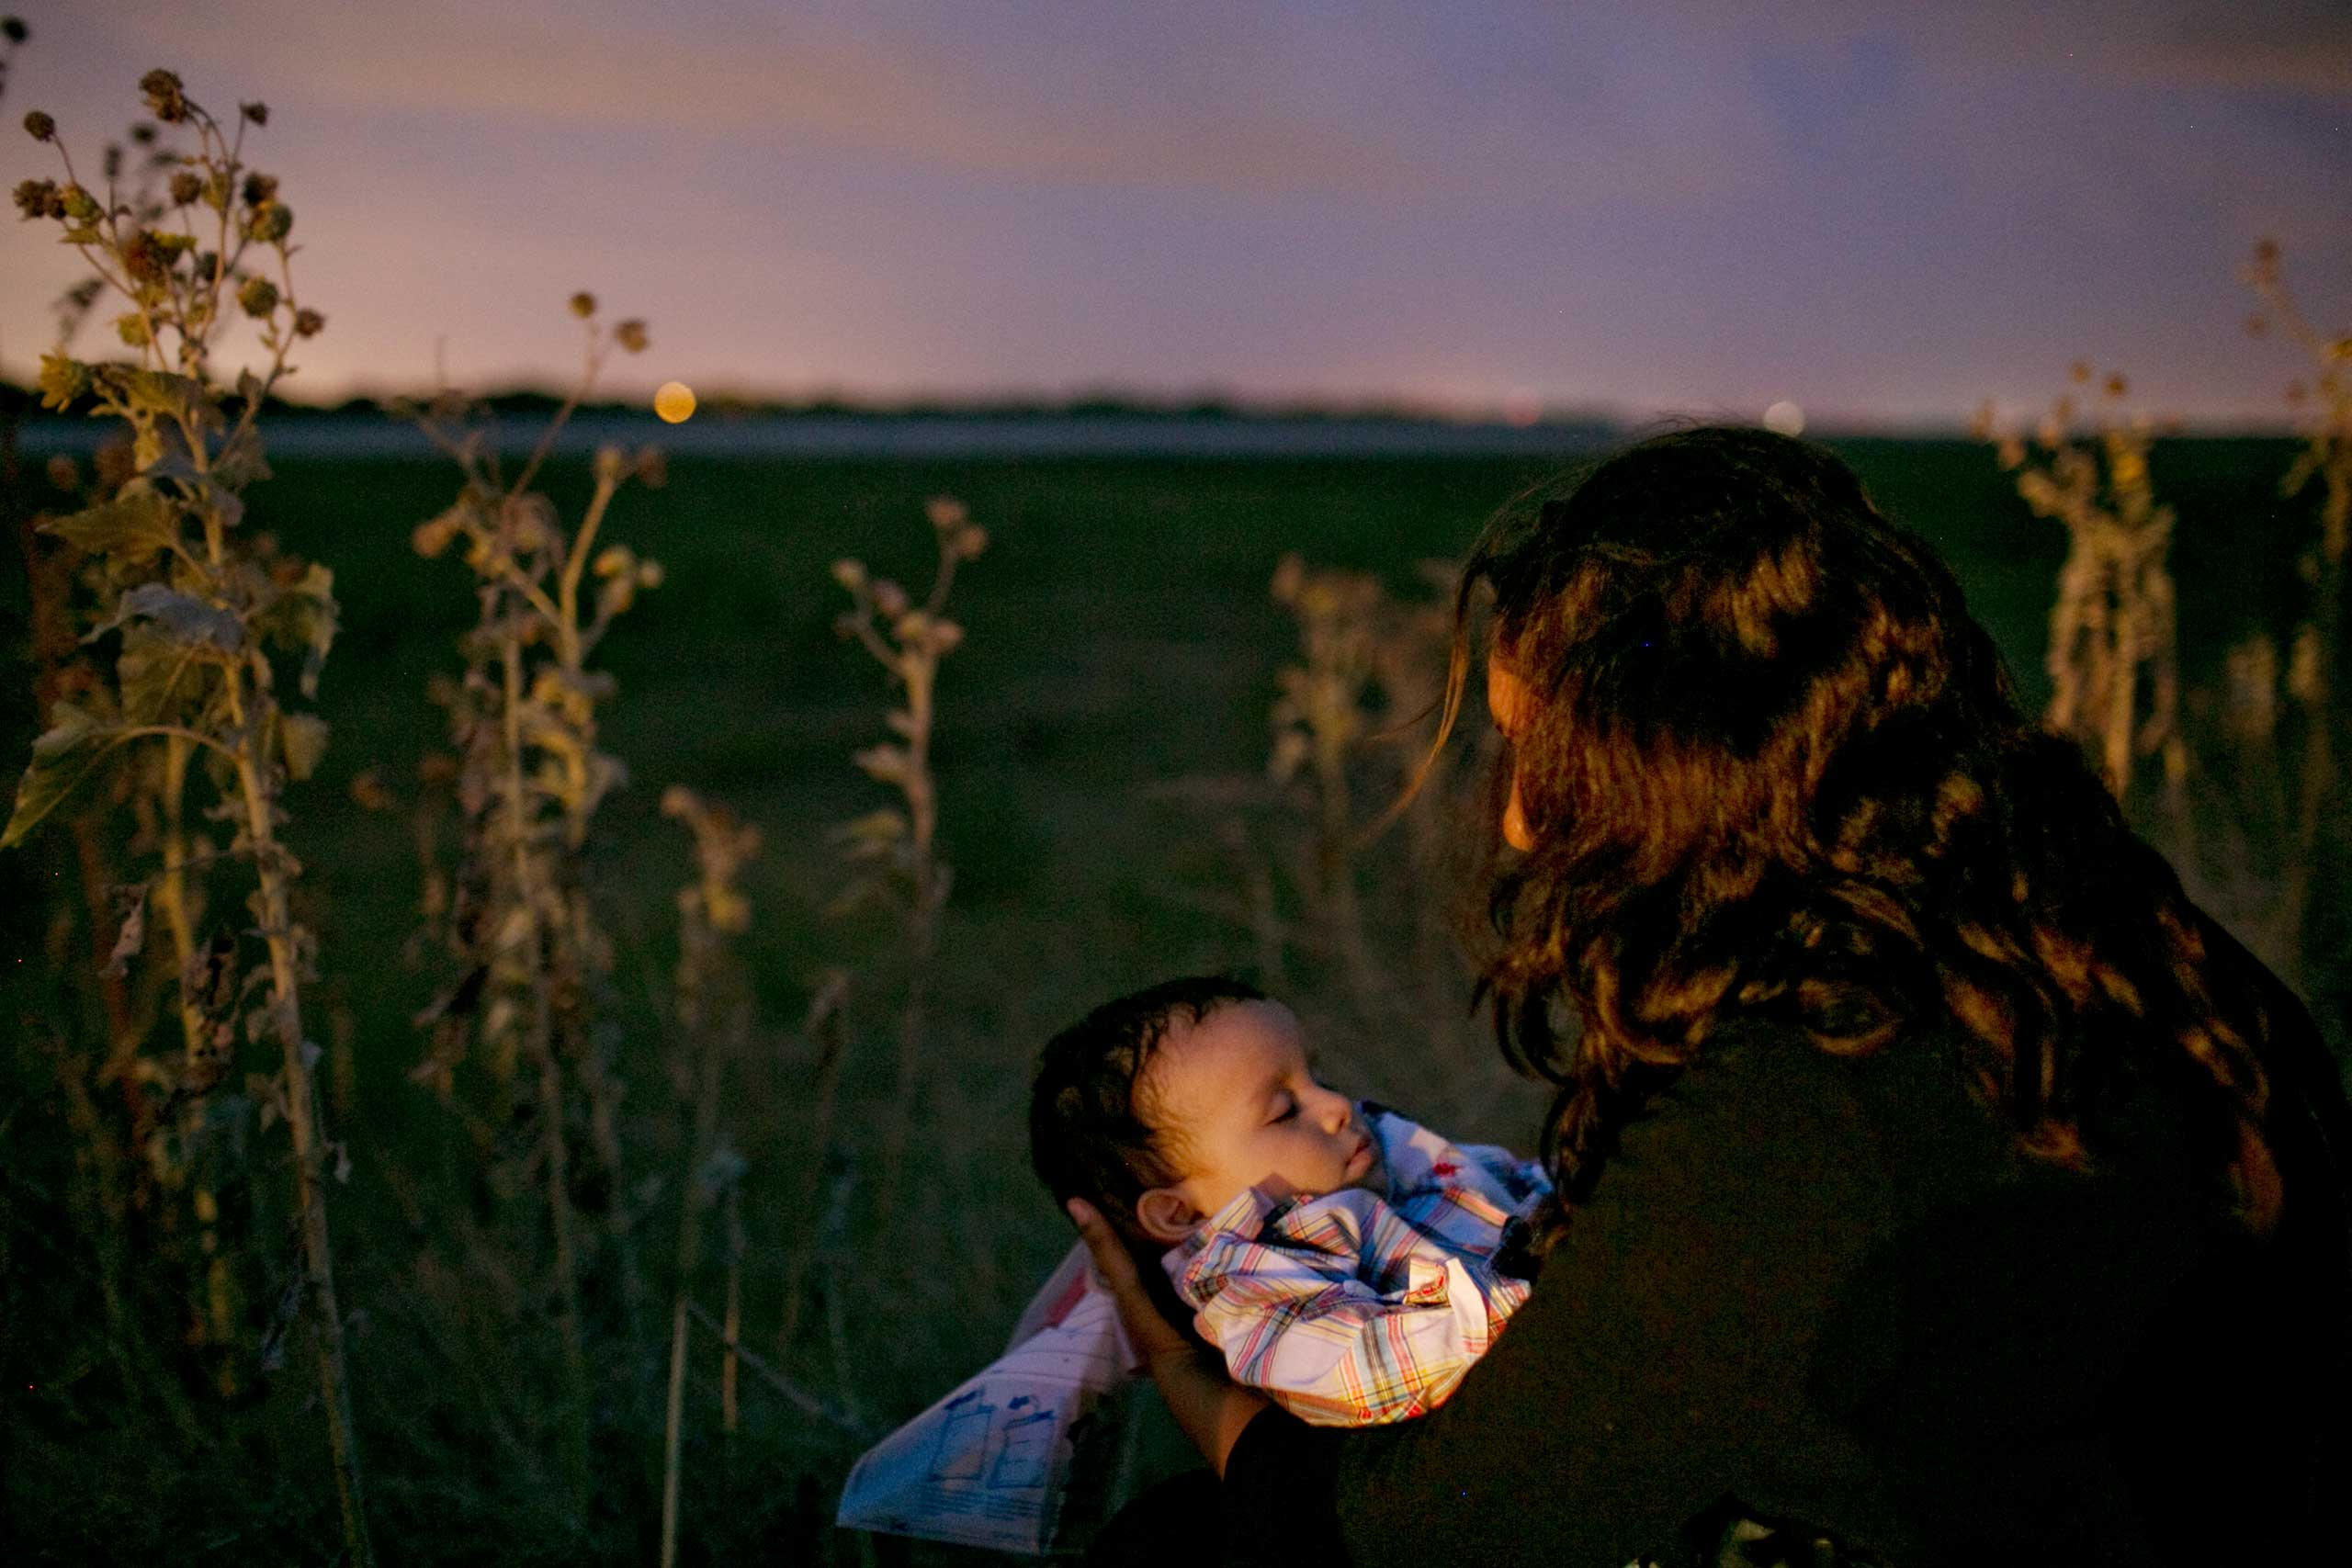 TIME LightBox: Documenting Immigration From Both Sides of the BorderA woman and her child from Central America are apprehended just after crossing the Rio Grande, Hidalgo, Texas, June 24, 2014.